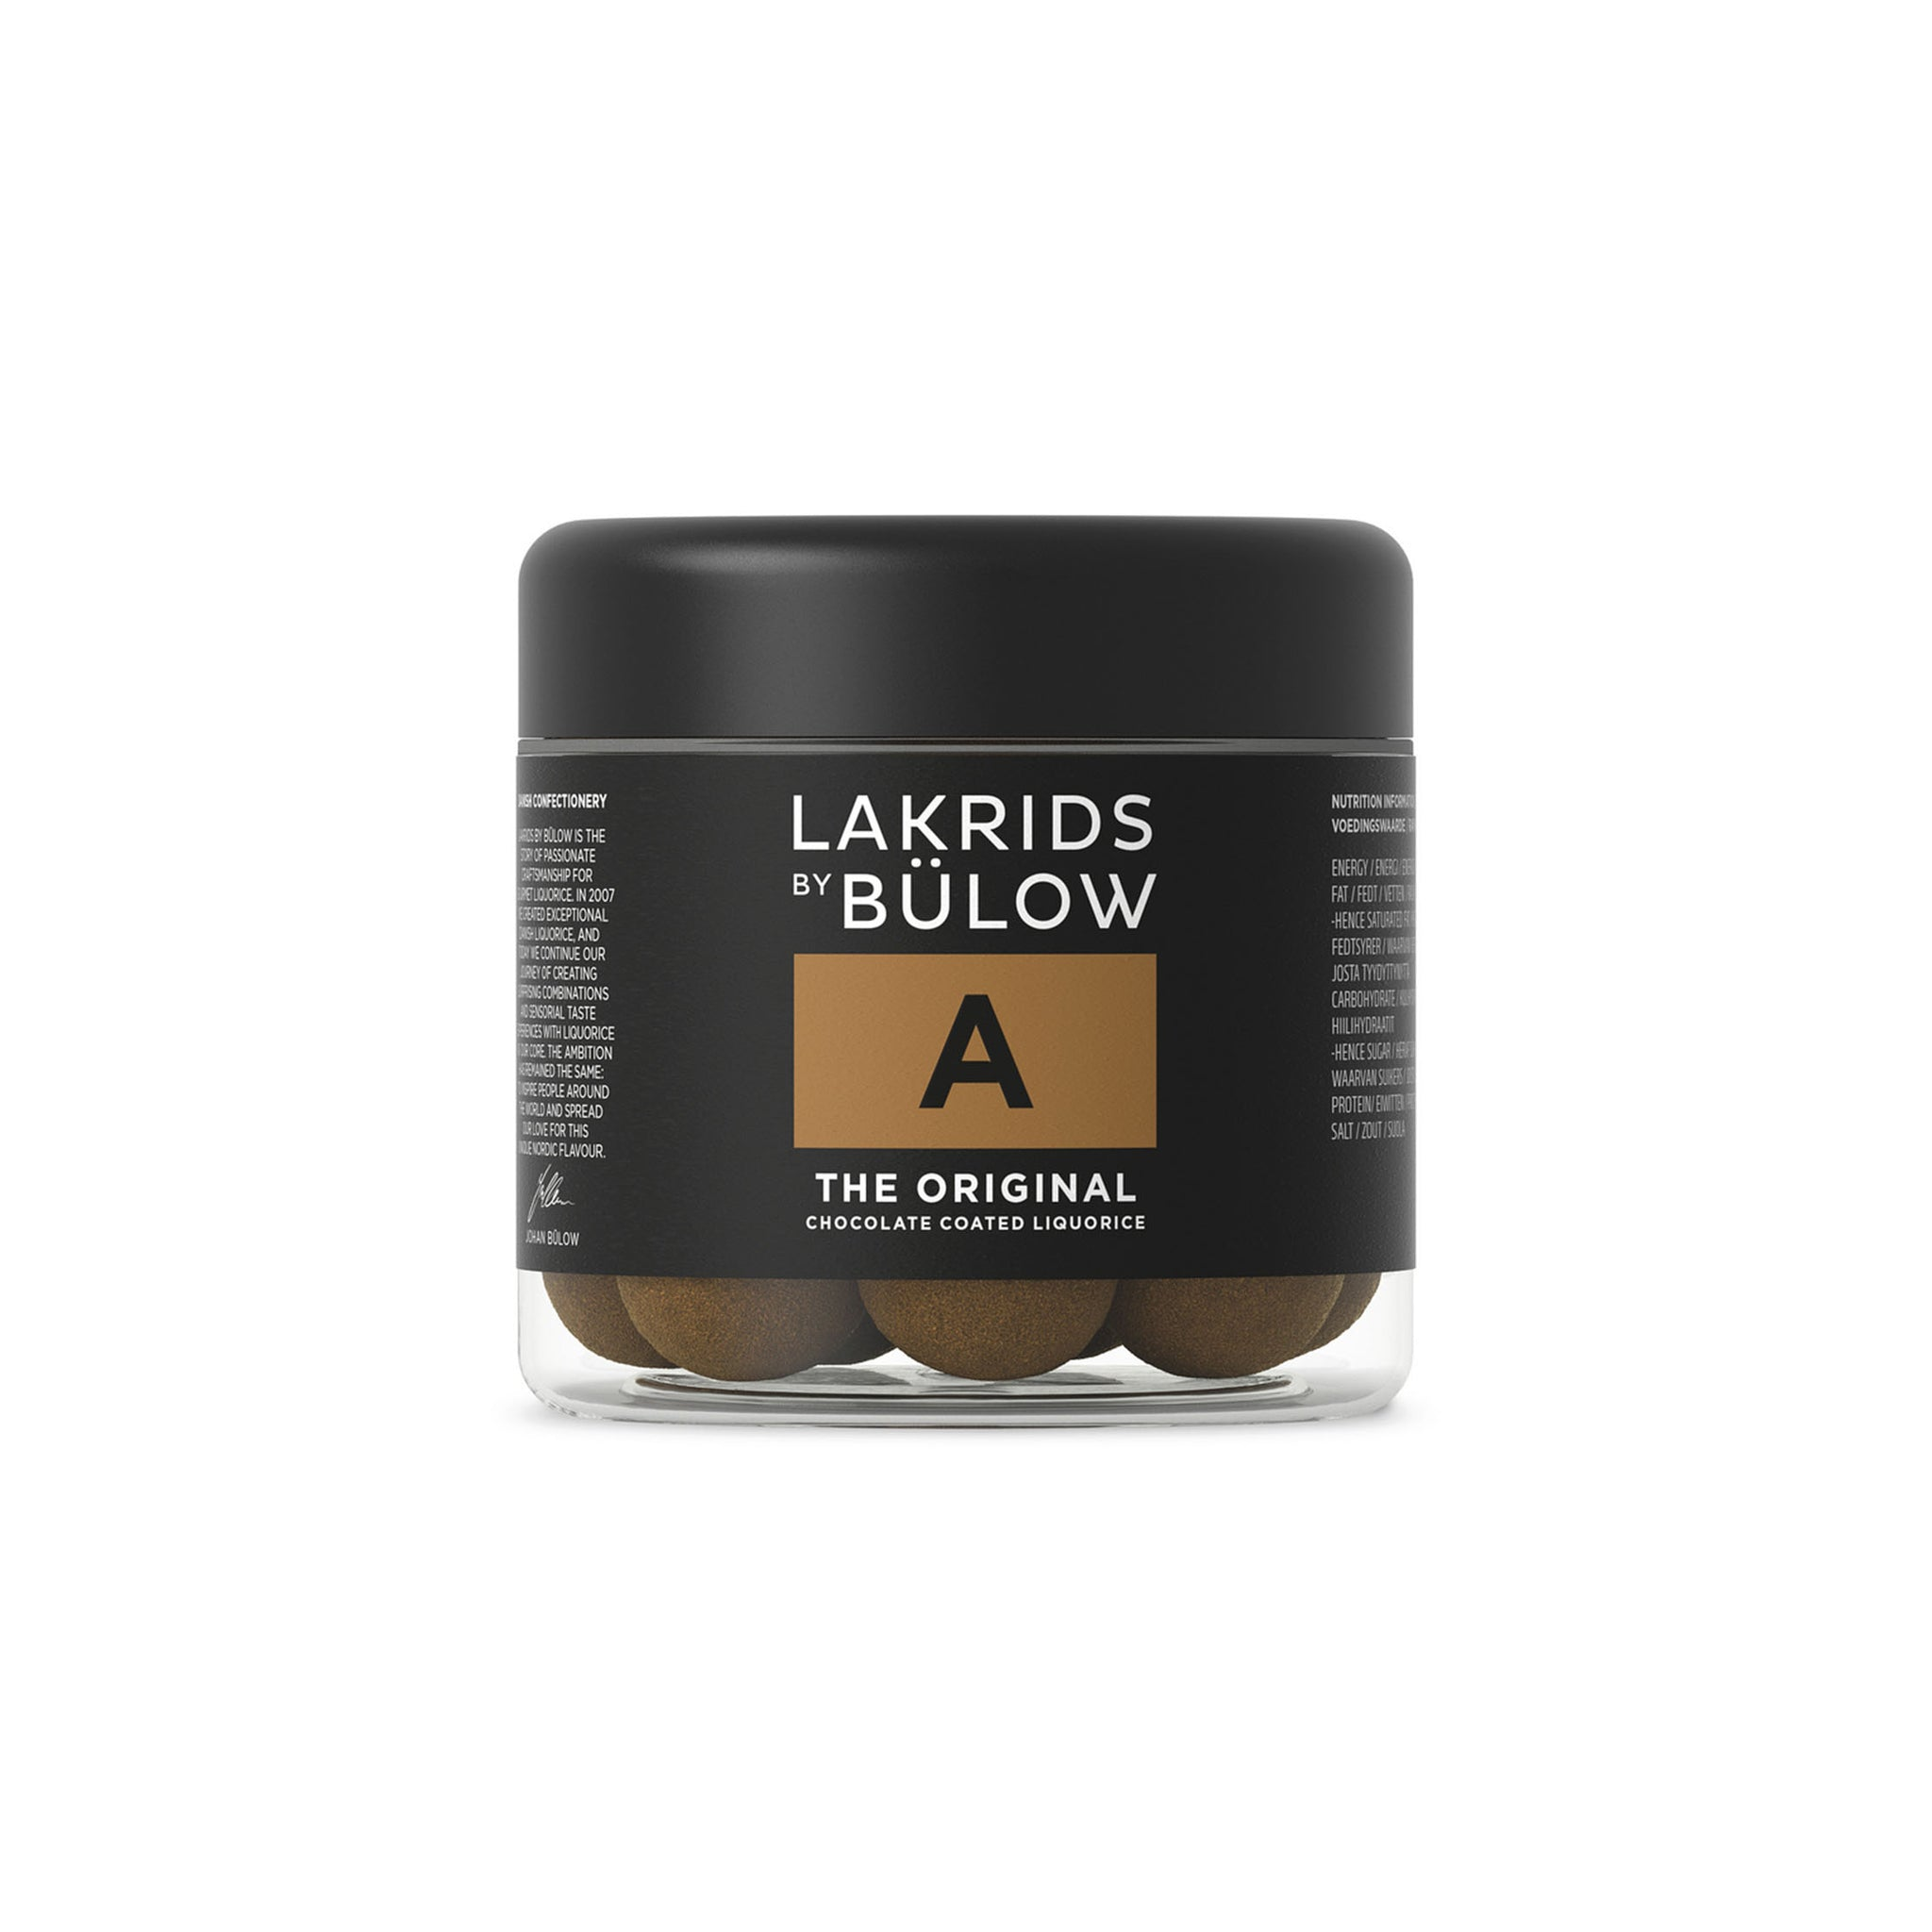 Lakrids Liquorice A Chocolate Coated Liquorice 125g Ingredients Chocolate Bars & Confectionery